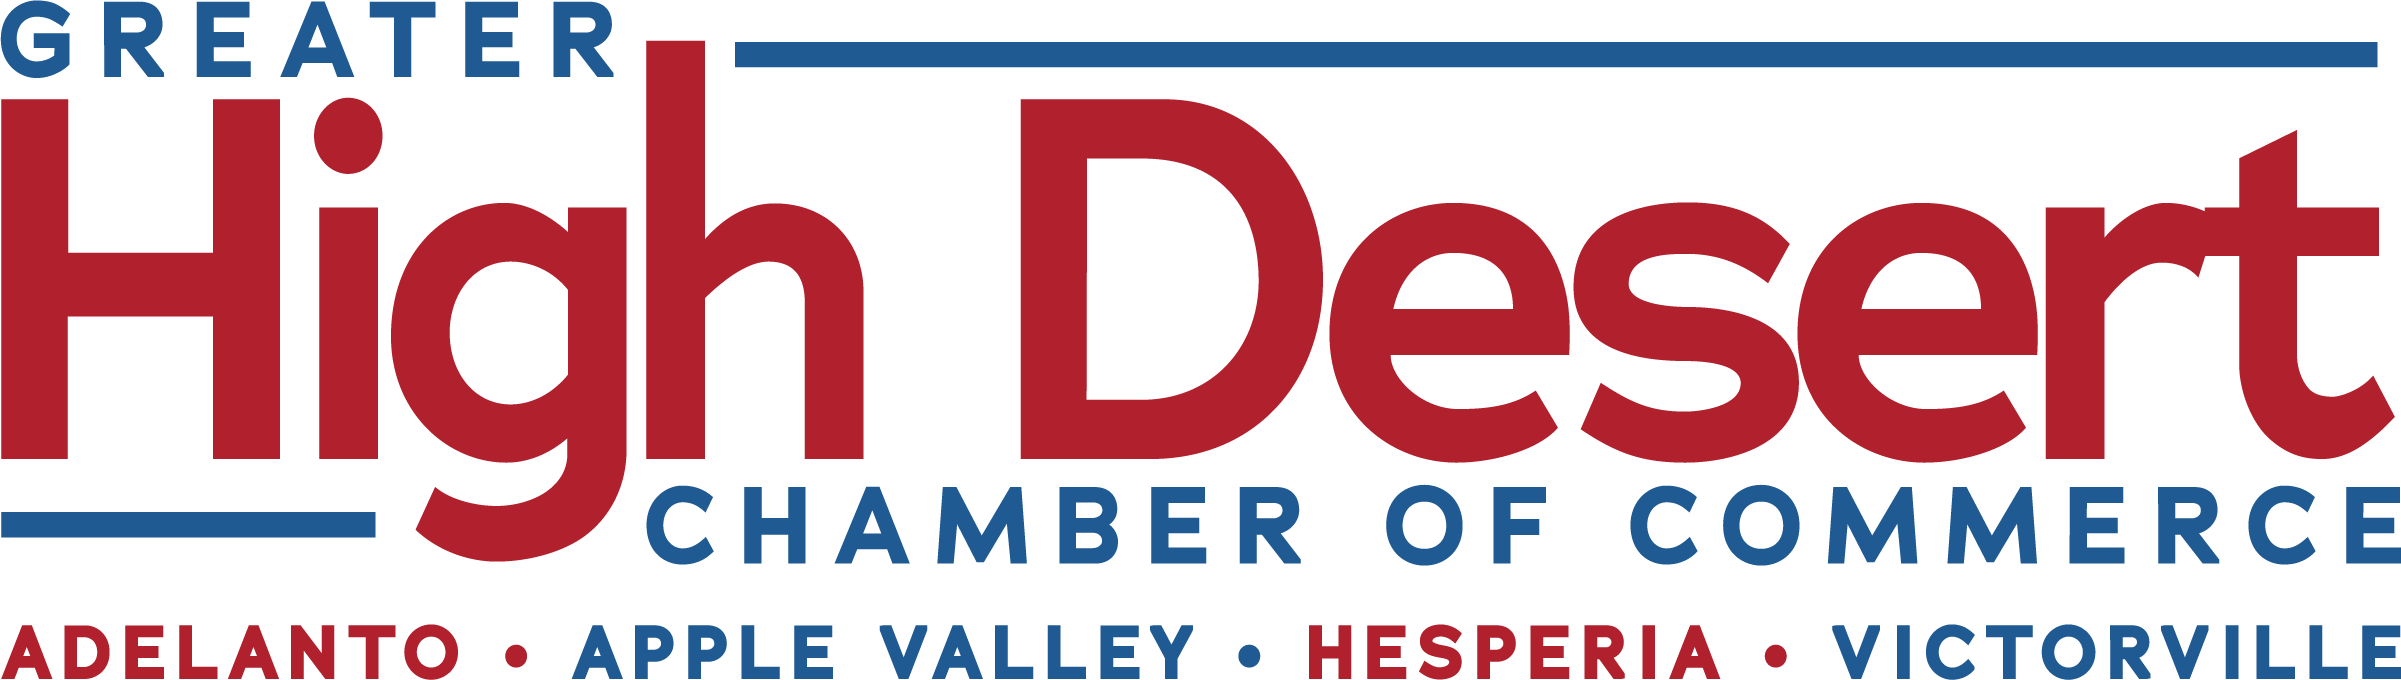 Hesperia Chamber of Commerce Logo